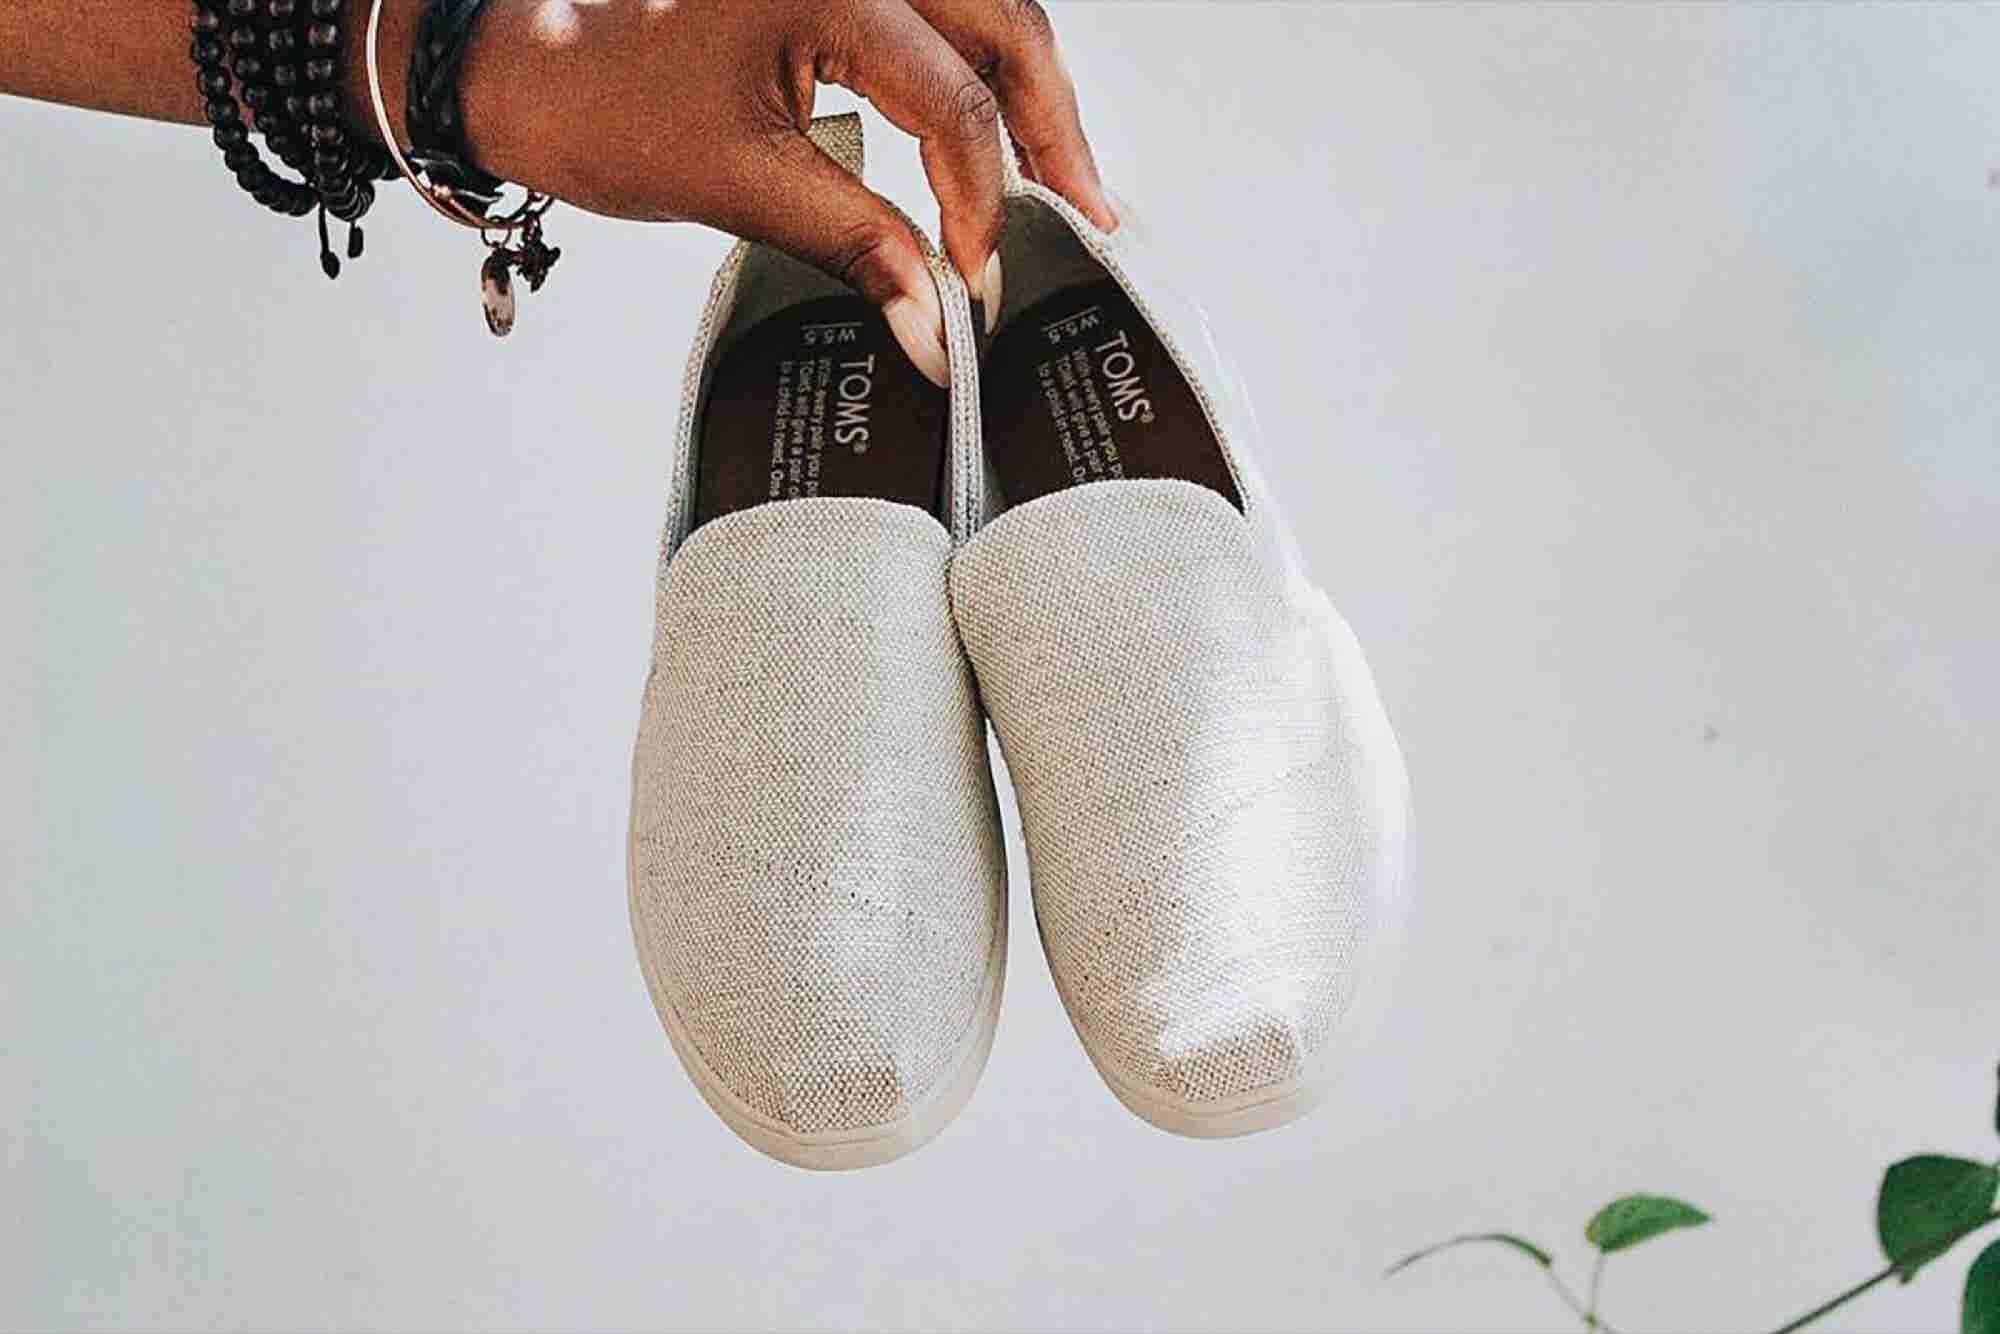 Want to Emulate Toms Shoes' Charitable Model? Here's How to Get Started.